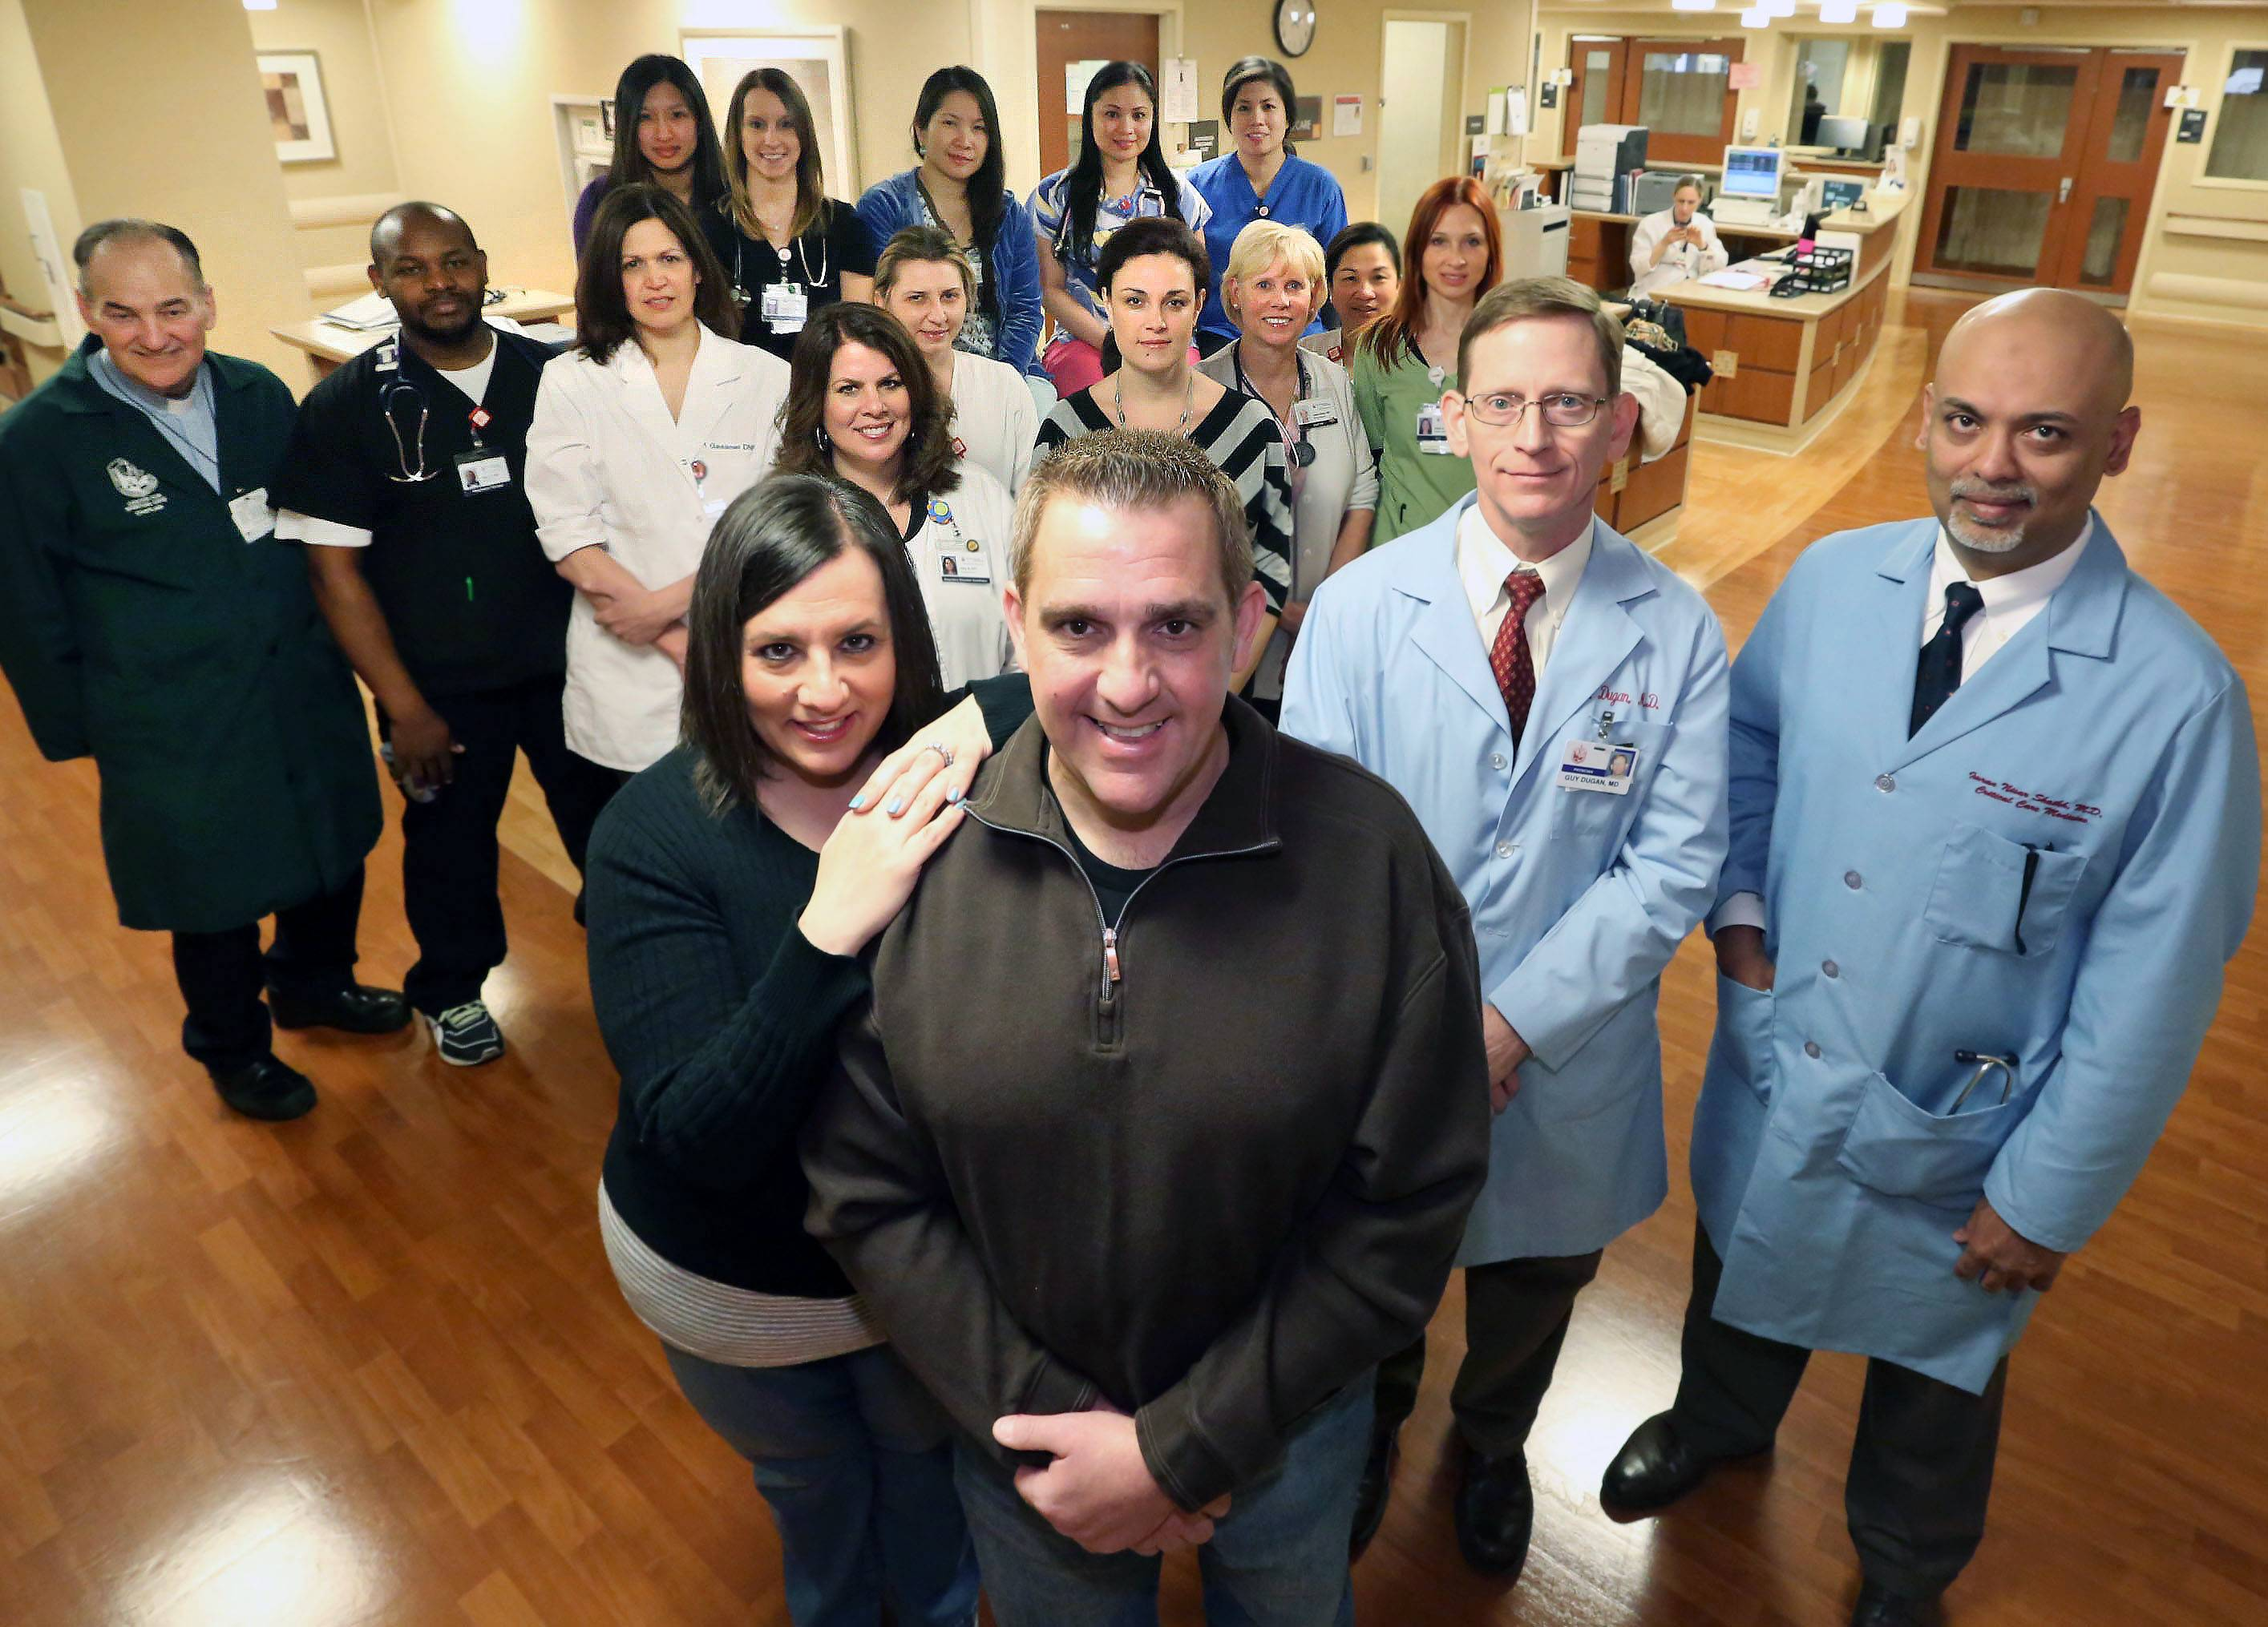 Mike LaRosa and his wife Joanna, of Schaumburg, in front, are backed by a small army of those who cared for him as he battled back from a near-deadly case of the flu at Alexian Brothers Medical Center in Elk Grove Village. Among them are doctors Guy Dugan and Imran Shaikh, left to right in blue jackets, the Rev. Bill Veith, far left, and patient care technicians, respiratory therapists, registered nurses and advanced practice nurses.